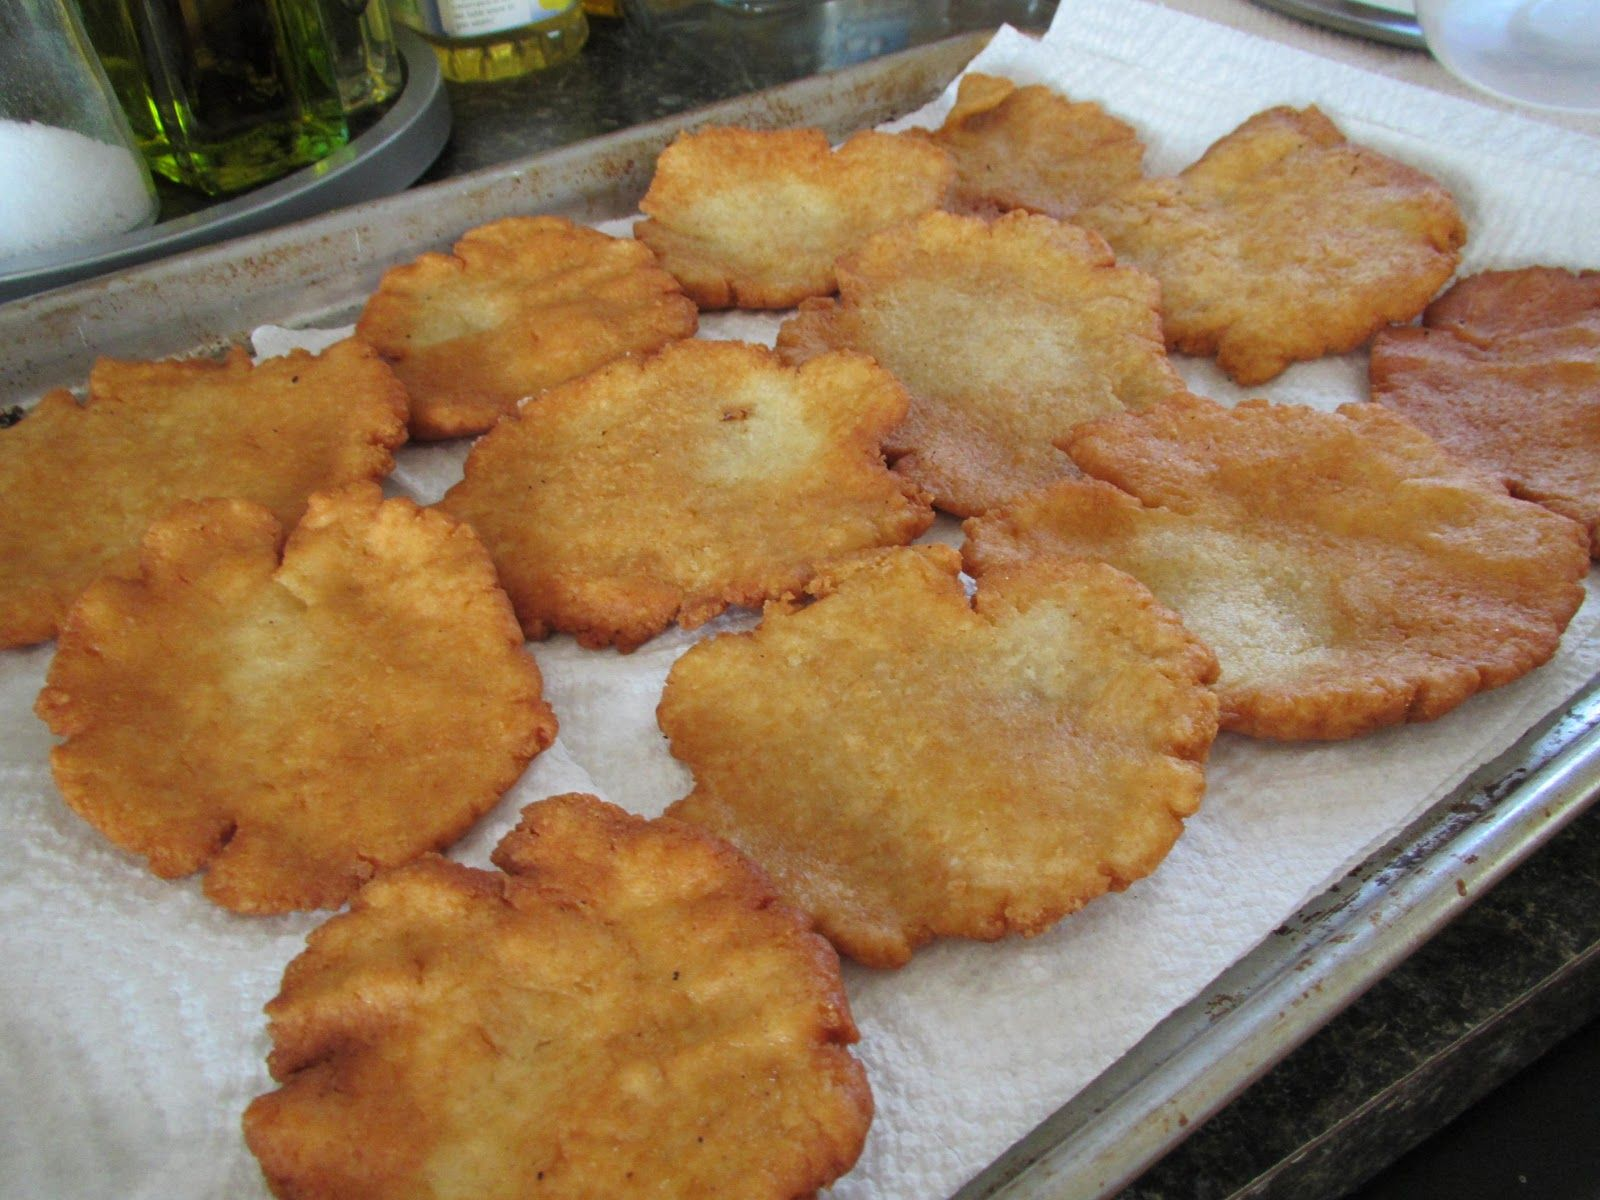 Gluten Free Indian Fry Bread Recipe I Haven T Had An Indian Fry Bread Taco In Years We Used To Get Them At The County Fai Fry Bread Food Indian Food Recipes